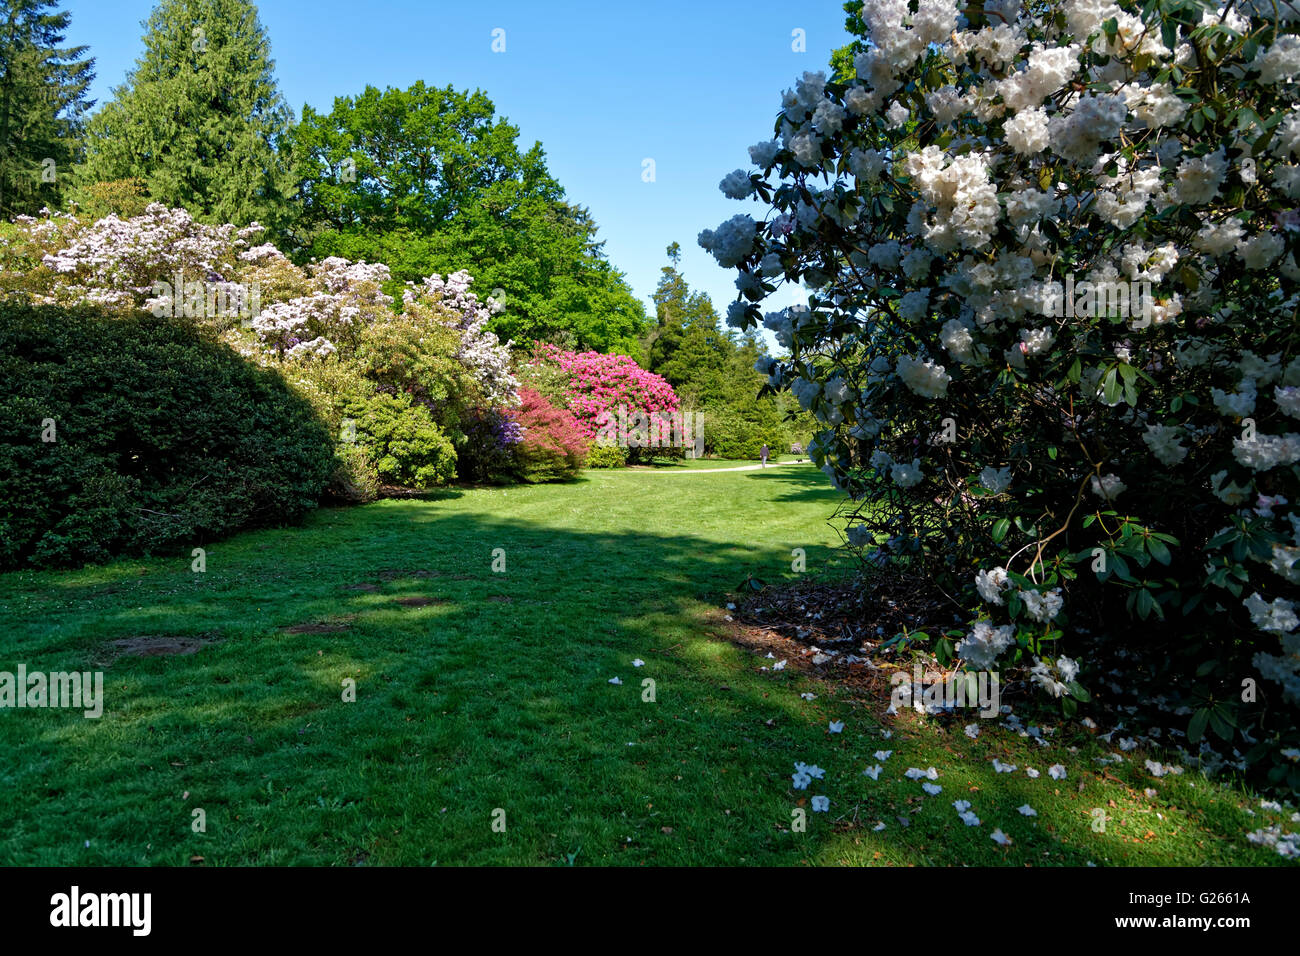 Heaven's Gate, Longleat, Wiltshire, UK. 24th May, 2016. Rhododendron's and Azalea's in flower at Heaven's - Stock Image